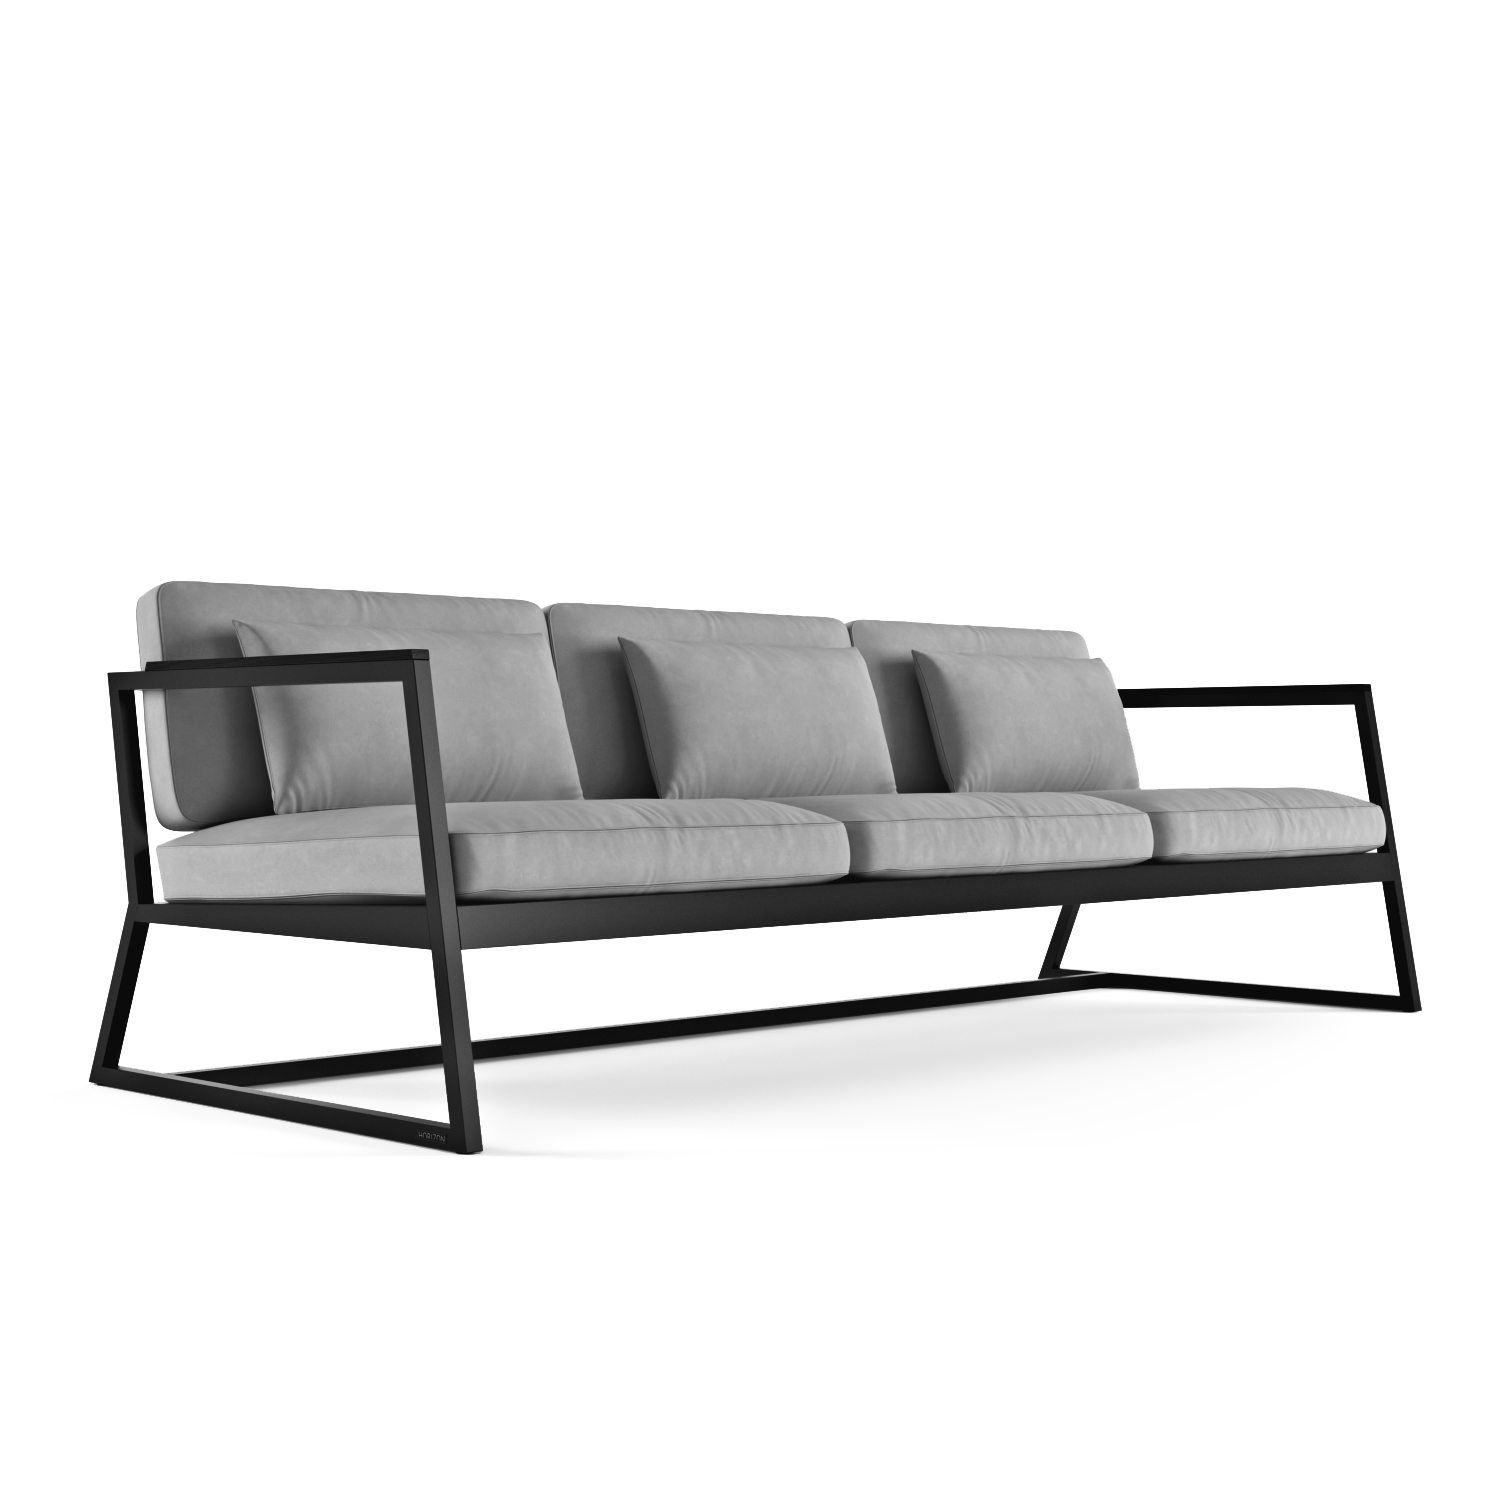 Office Sofas: Durrable Furniture Equals Solid Business Reputation